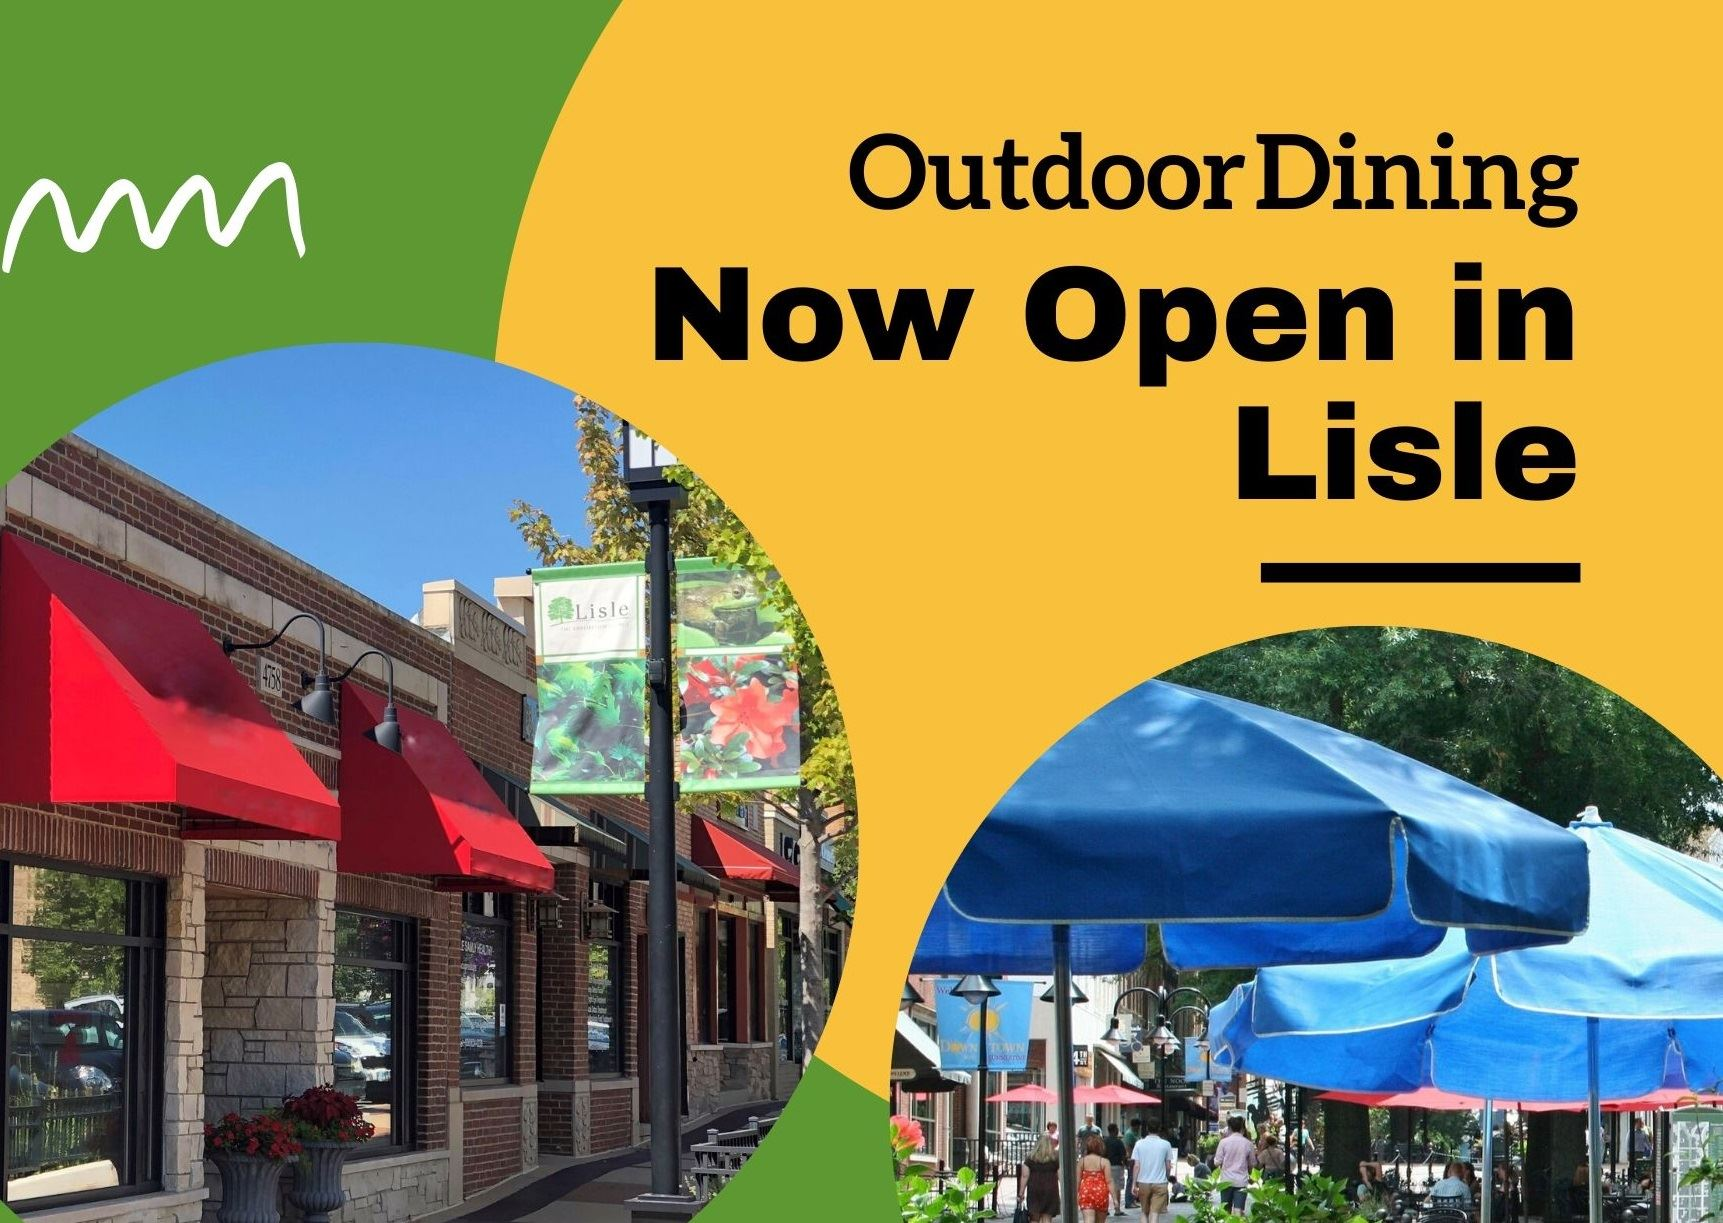 Outdoor Dining Poster1 (002)_crop